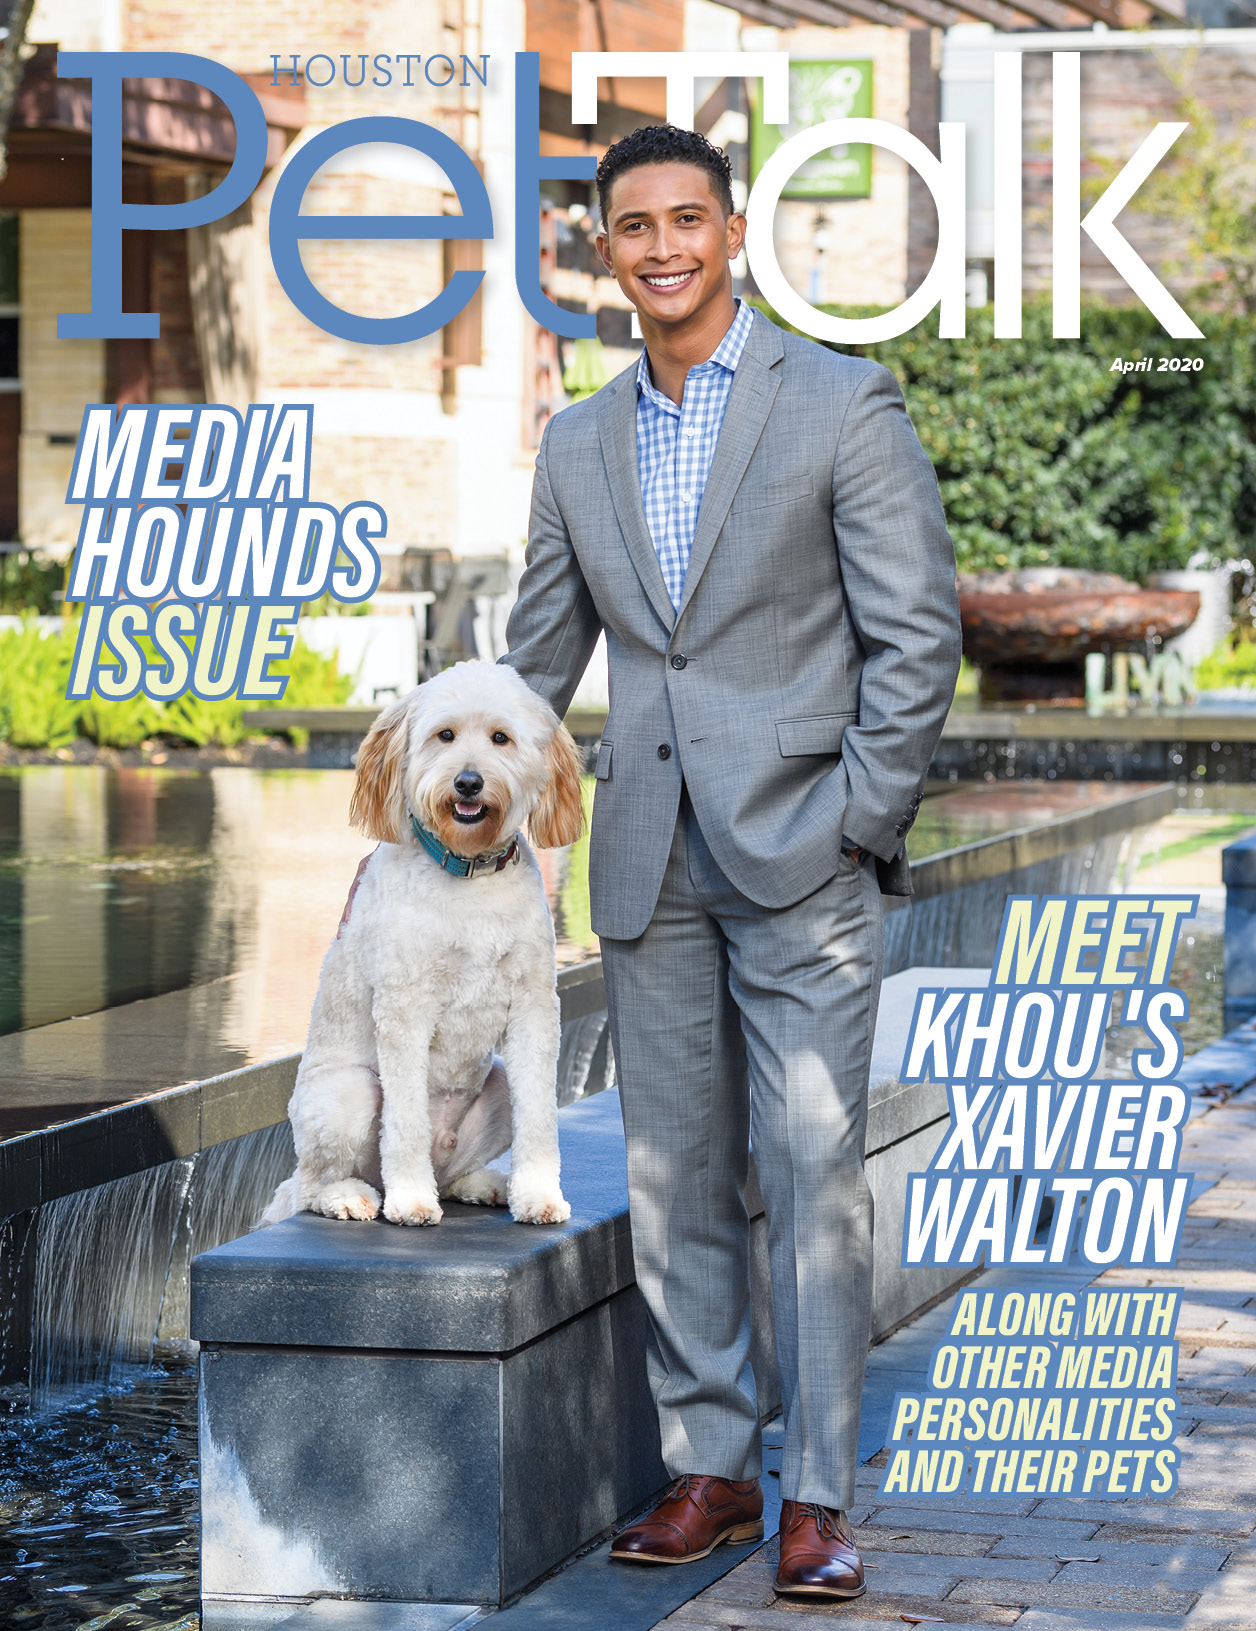 April 2020 Digital Issue of Houston PetTalk